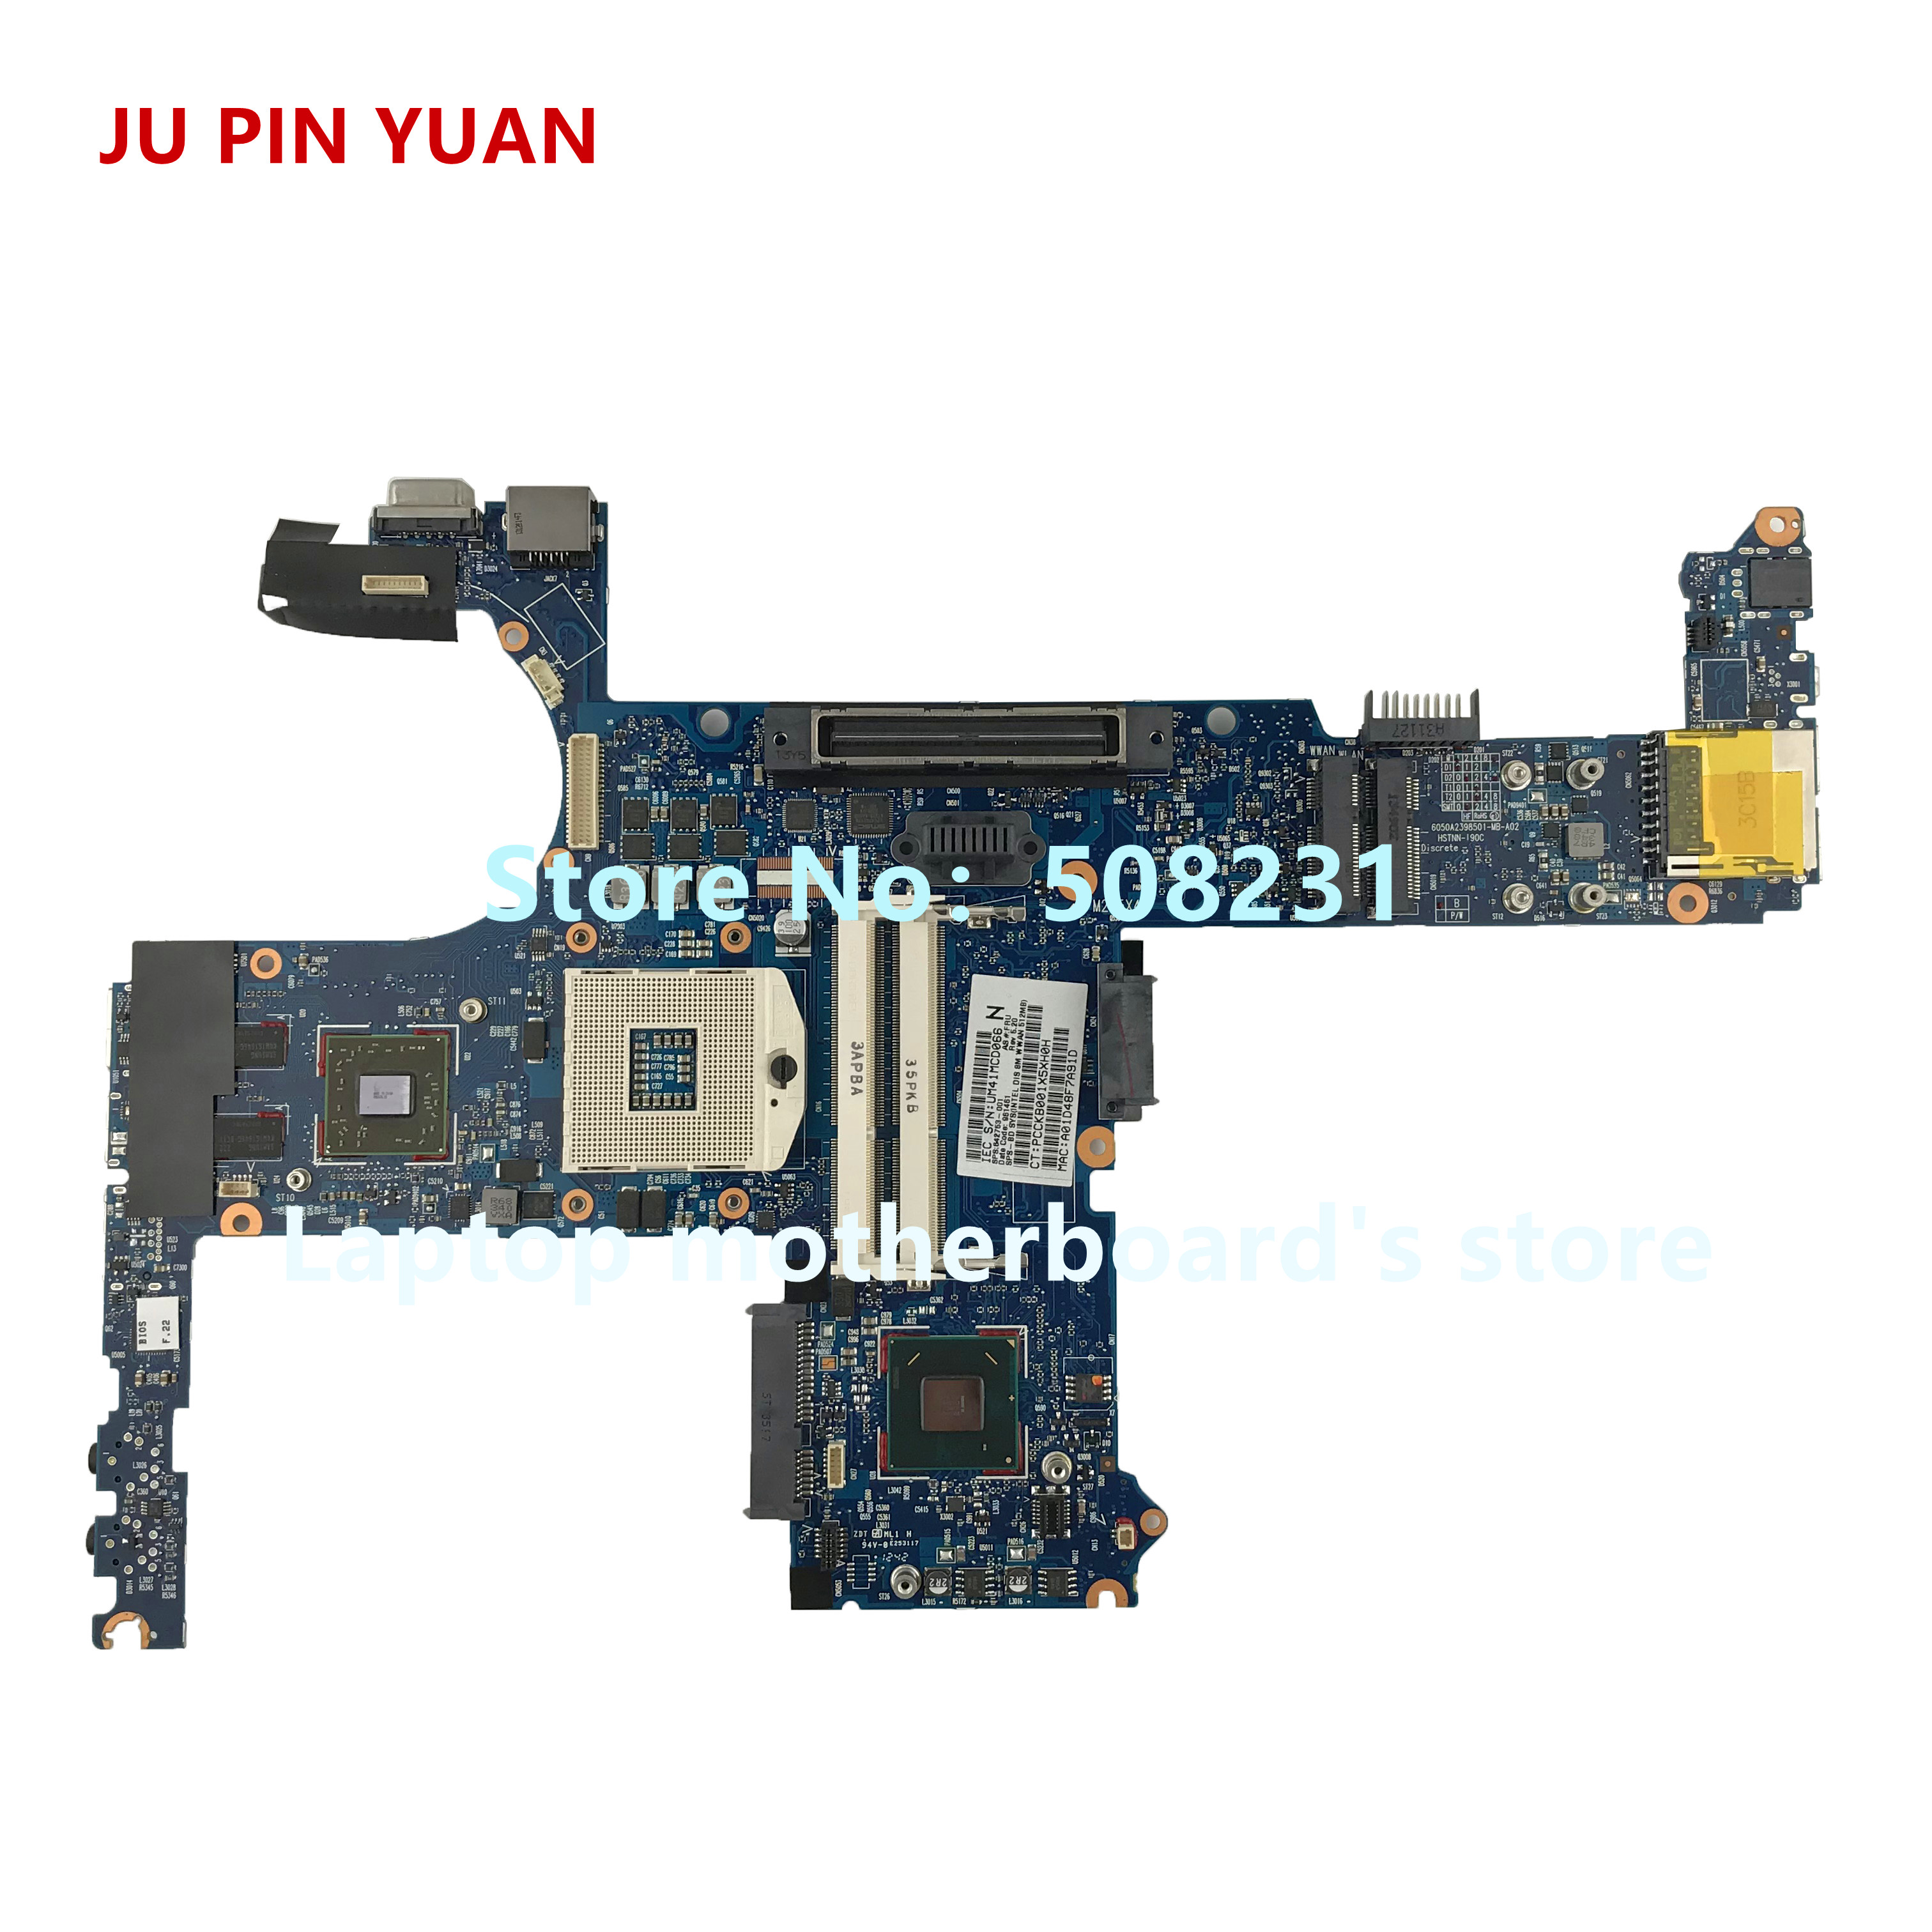 JU PIN YUAN For <font><b>HP</b></font> ProBook 6460b <font><b>8460P</b></font> Notebook PC laptop <font><b>motherboard</b></font> 642753-001 6050A2398501-MB-A02 mainboard fully Tested image